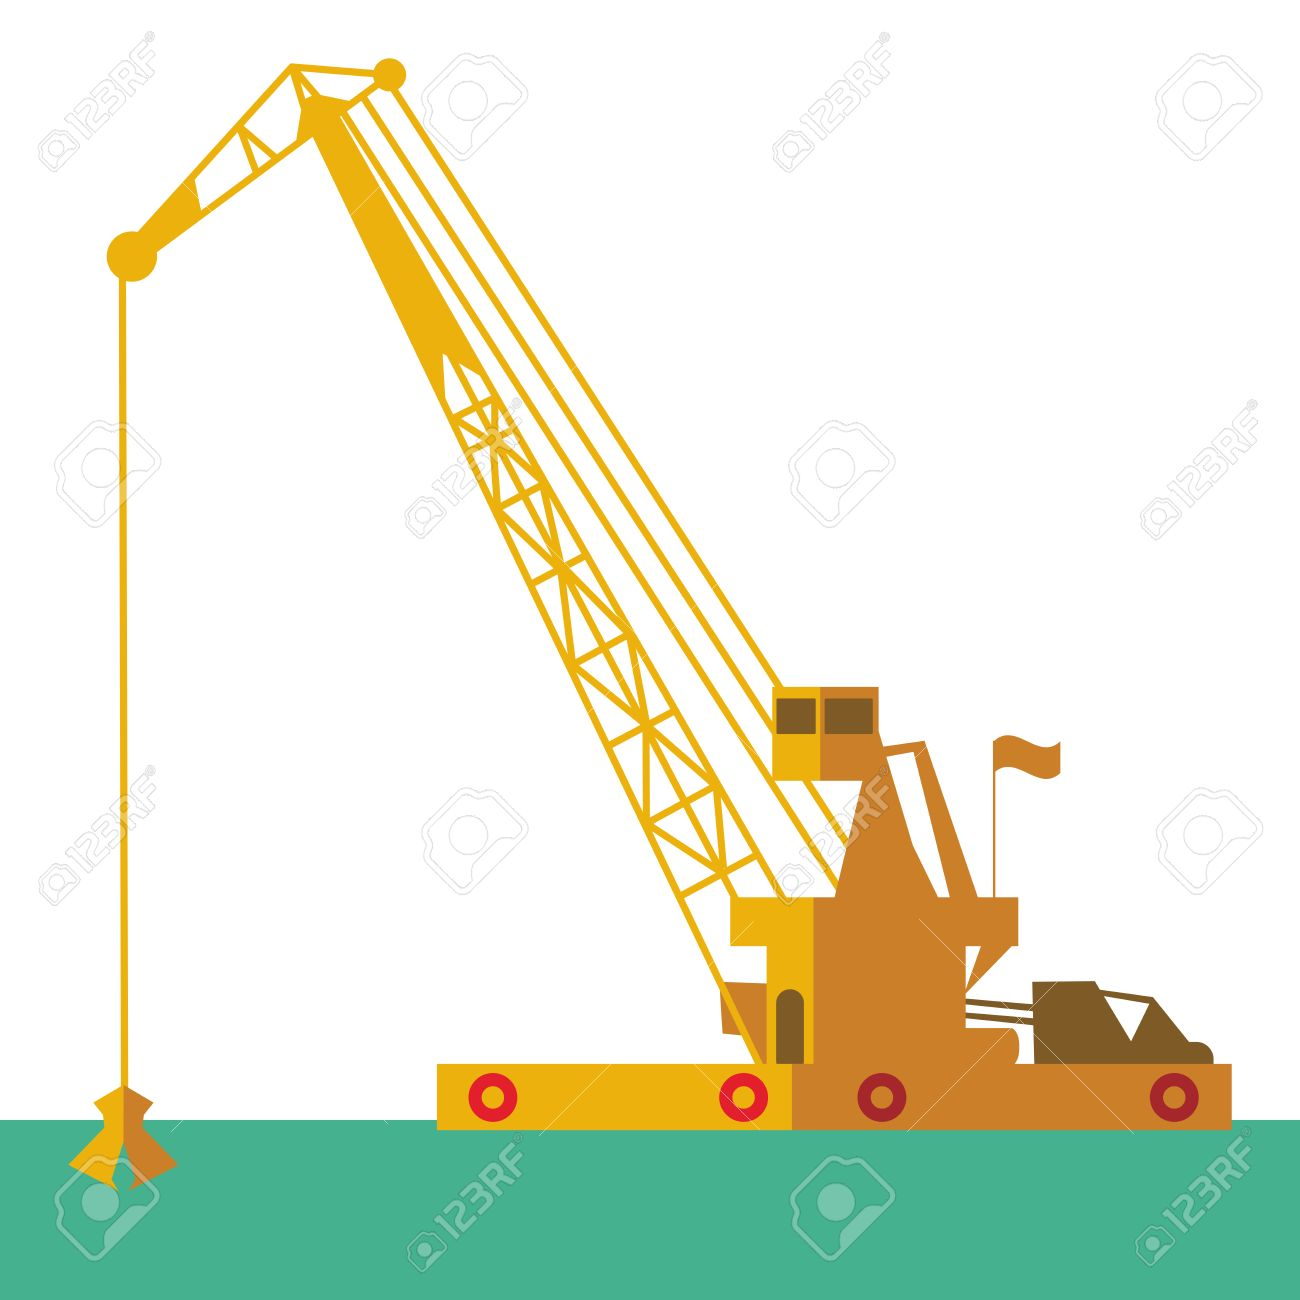 136 Dredging Stock Illustrations, Cliparts And Royalty Free.